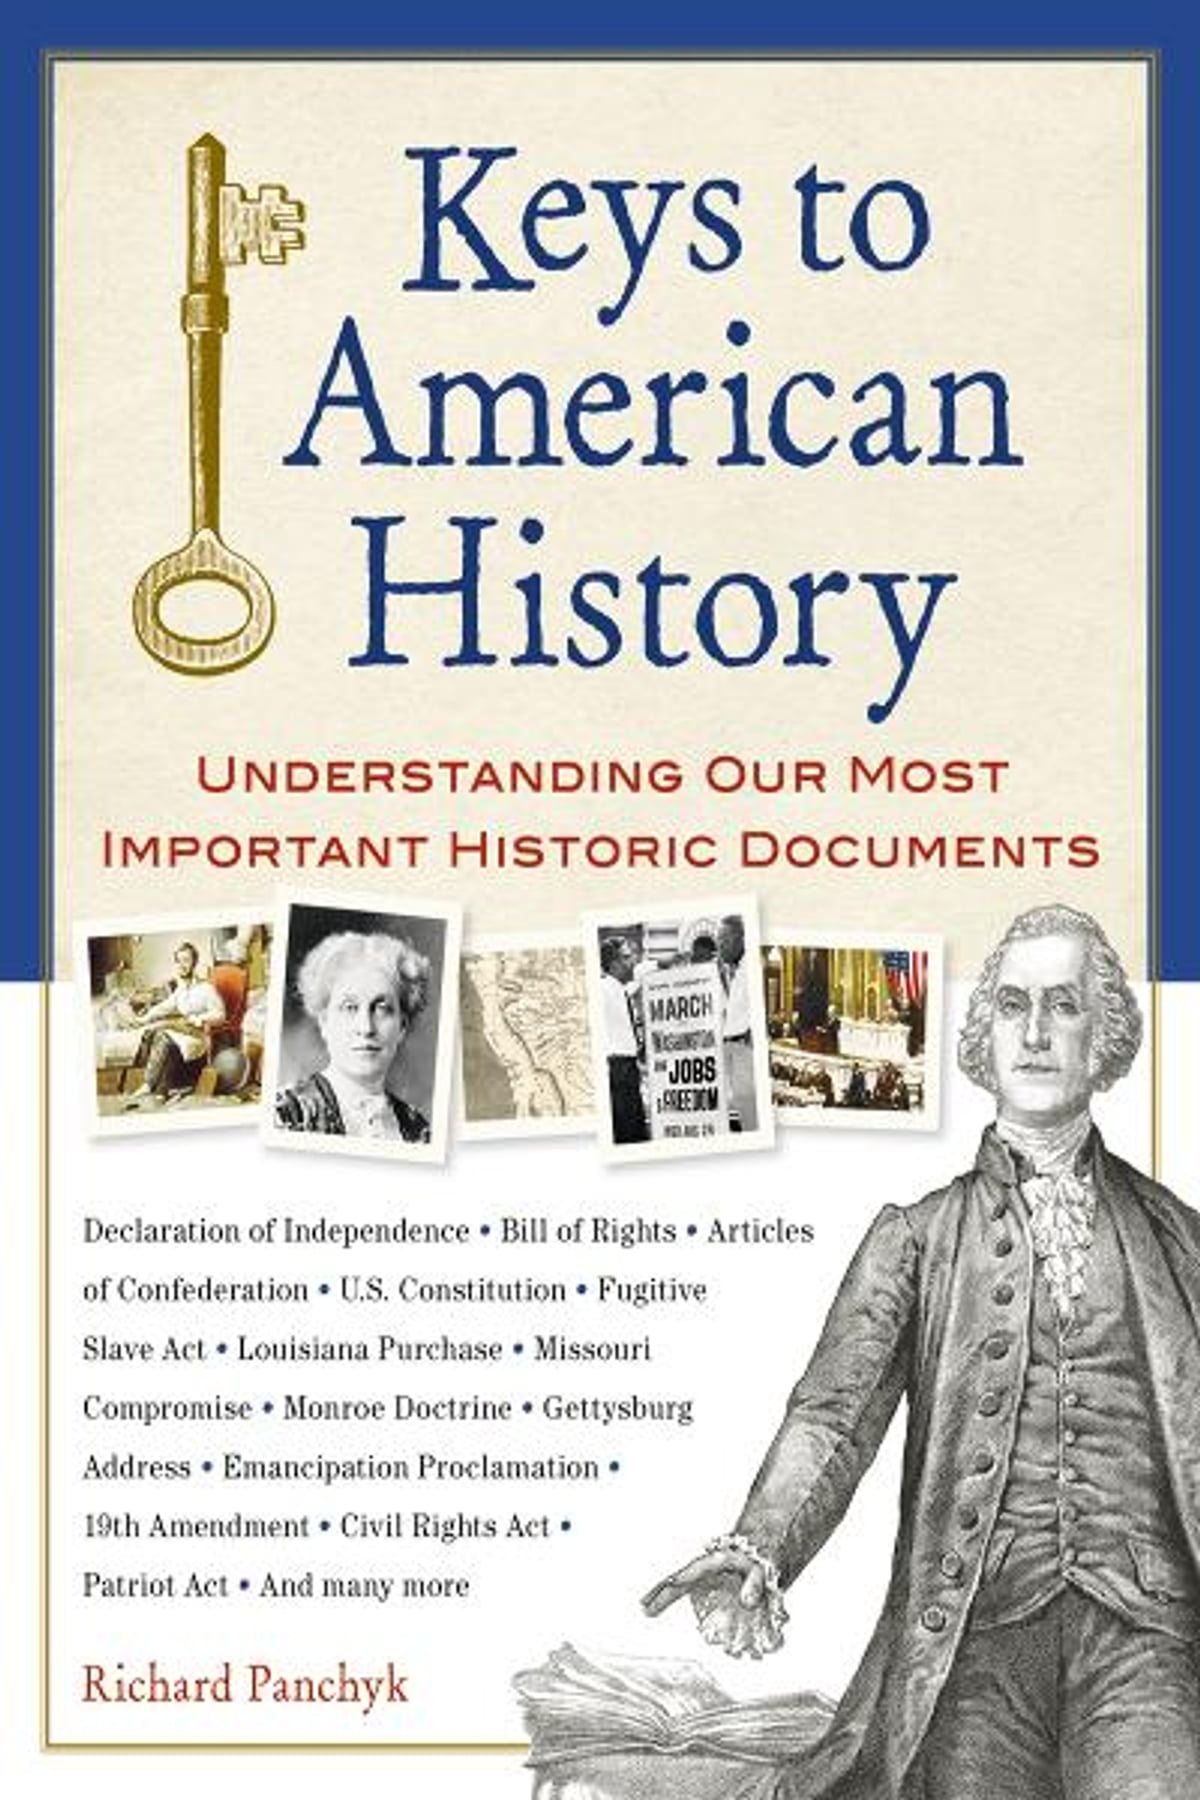 Keys to american history ebook by richard panchyk 9781613742143 keys to american history ebook by richard panchyk 9781613742143 rakuten kobo fandeluxe Document